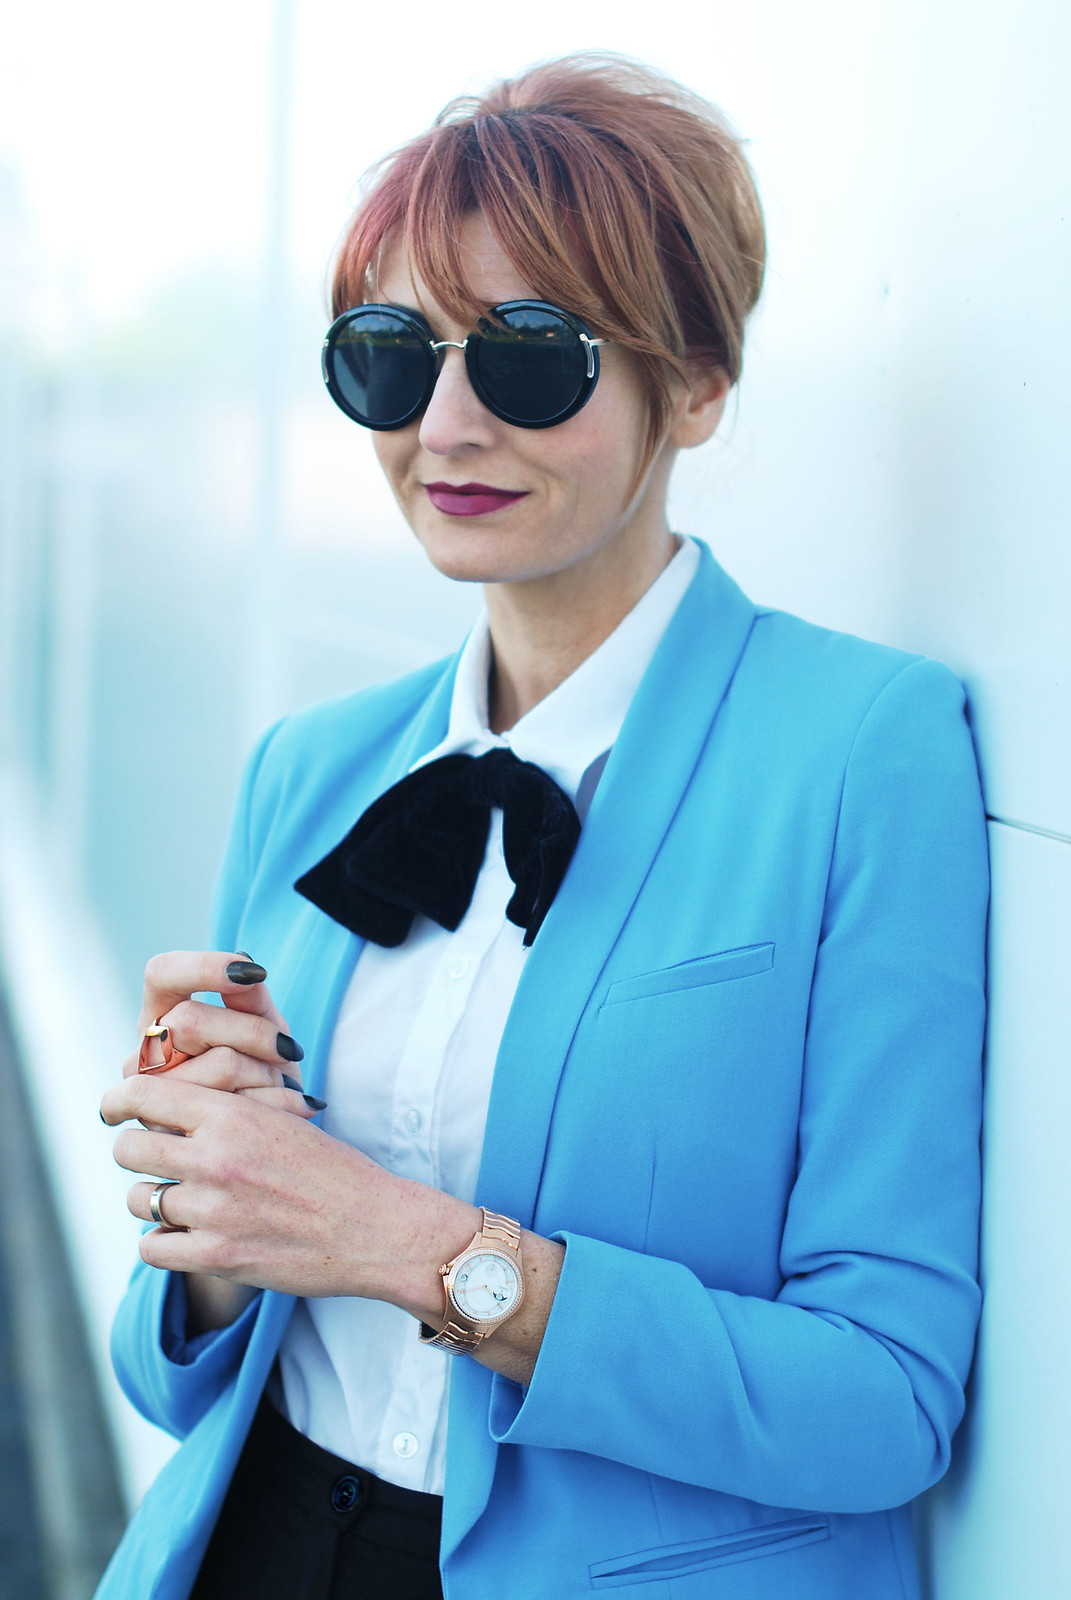 Maison EBEL collection rose gold diamond watch, sky blue blazer, black velvet bow tie, oversized round sunglasses | Not Dressed As Lamb